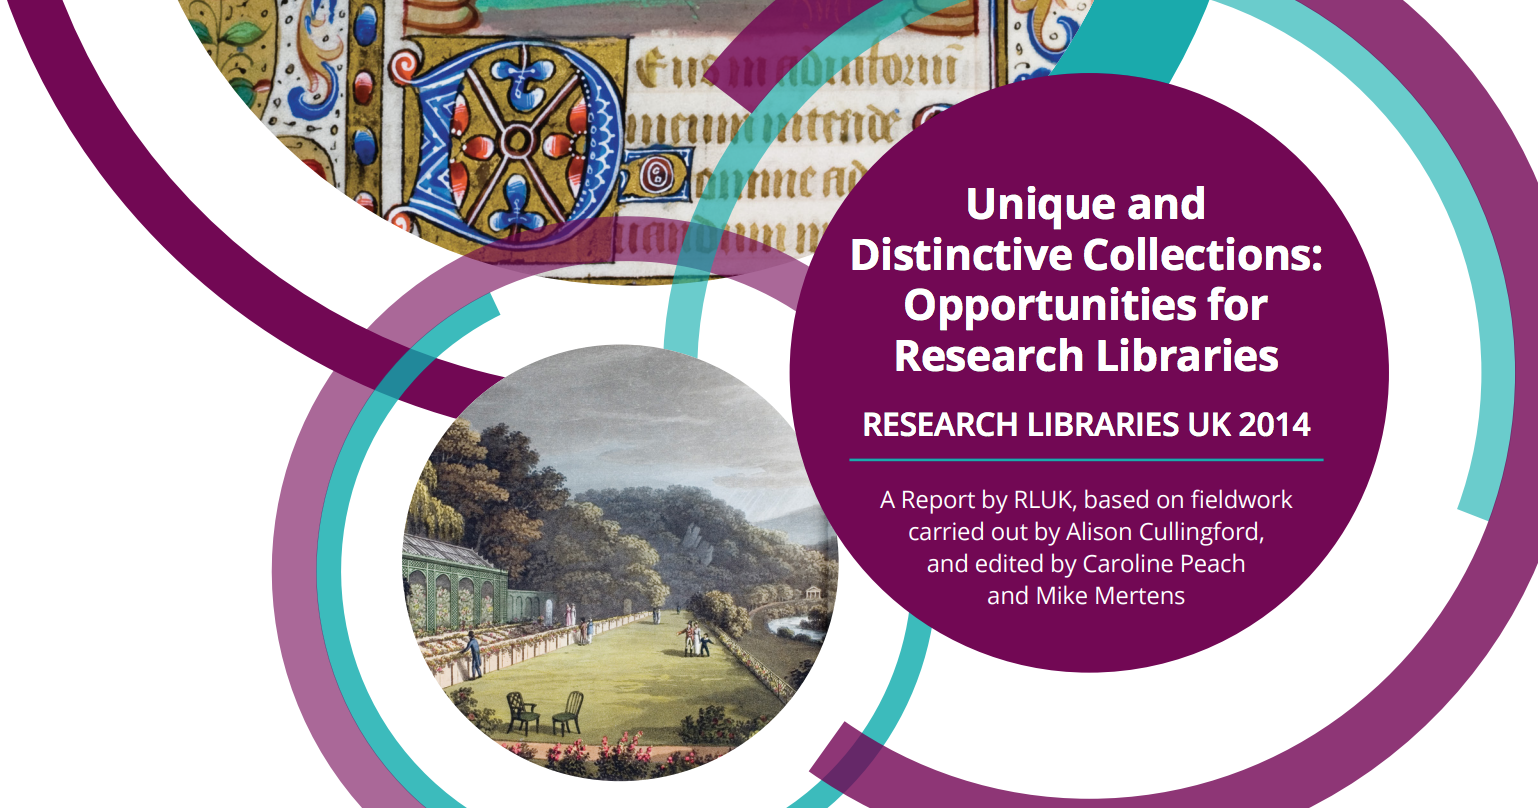 Unique and distinctive collections: opportunities for research libraries